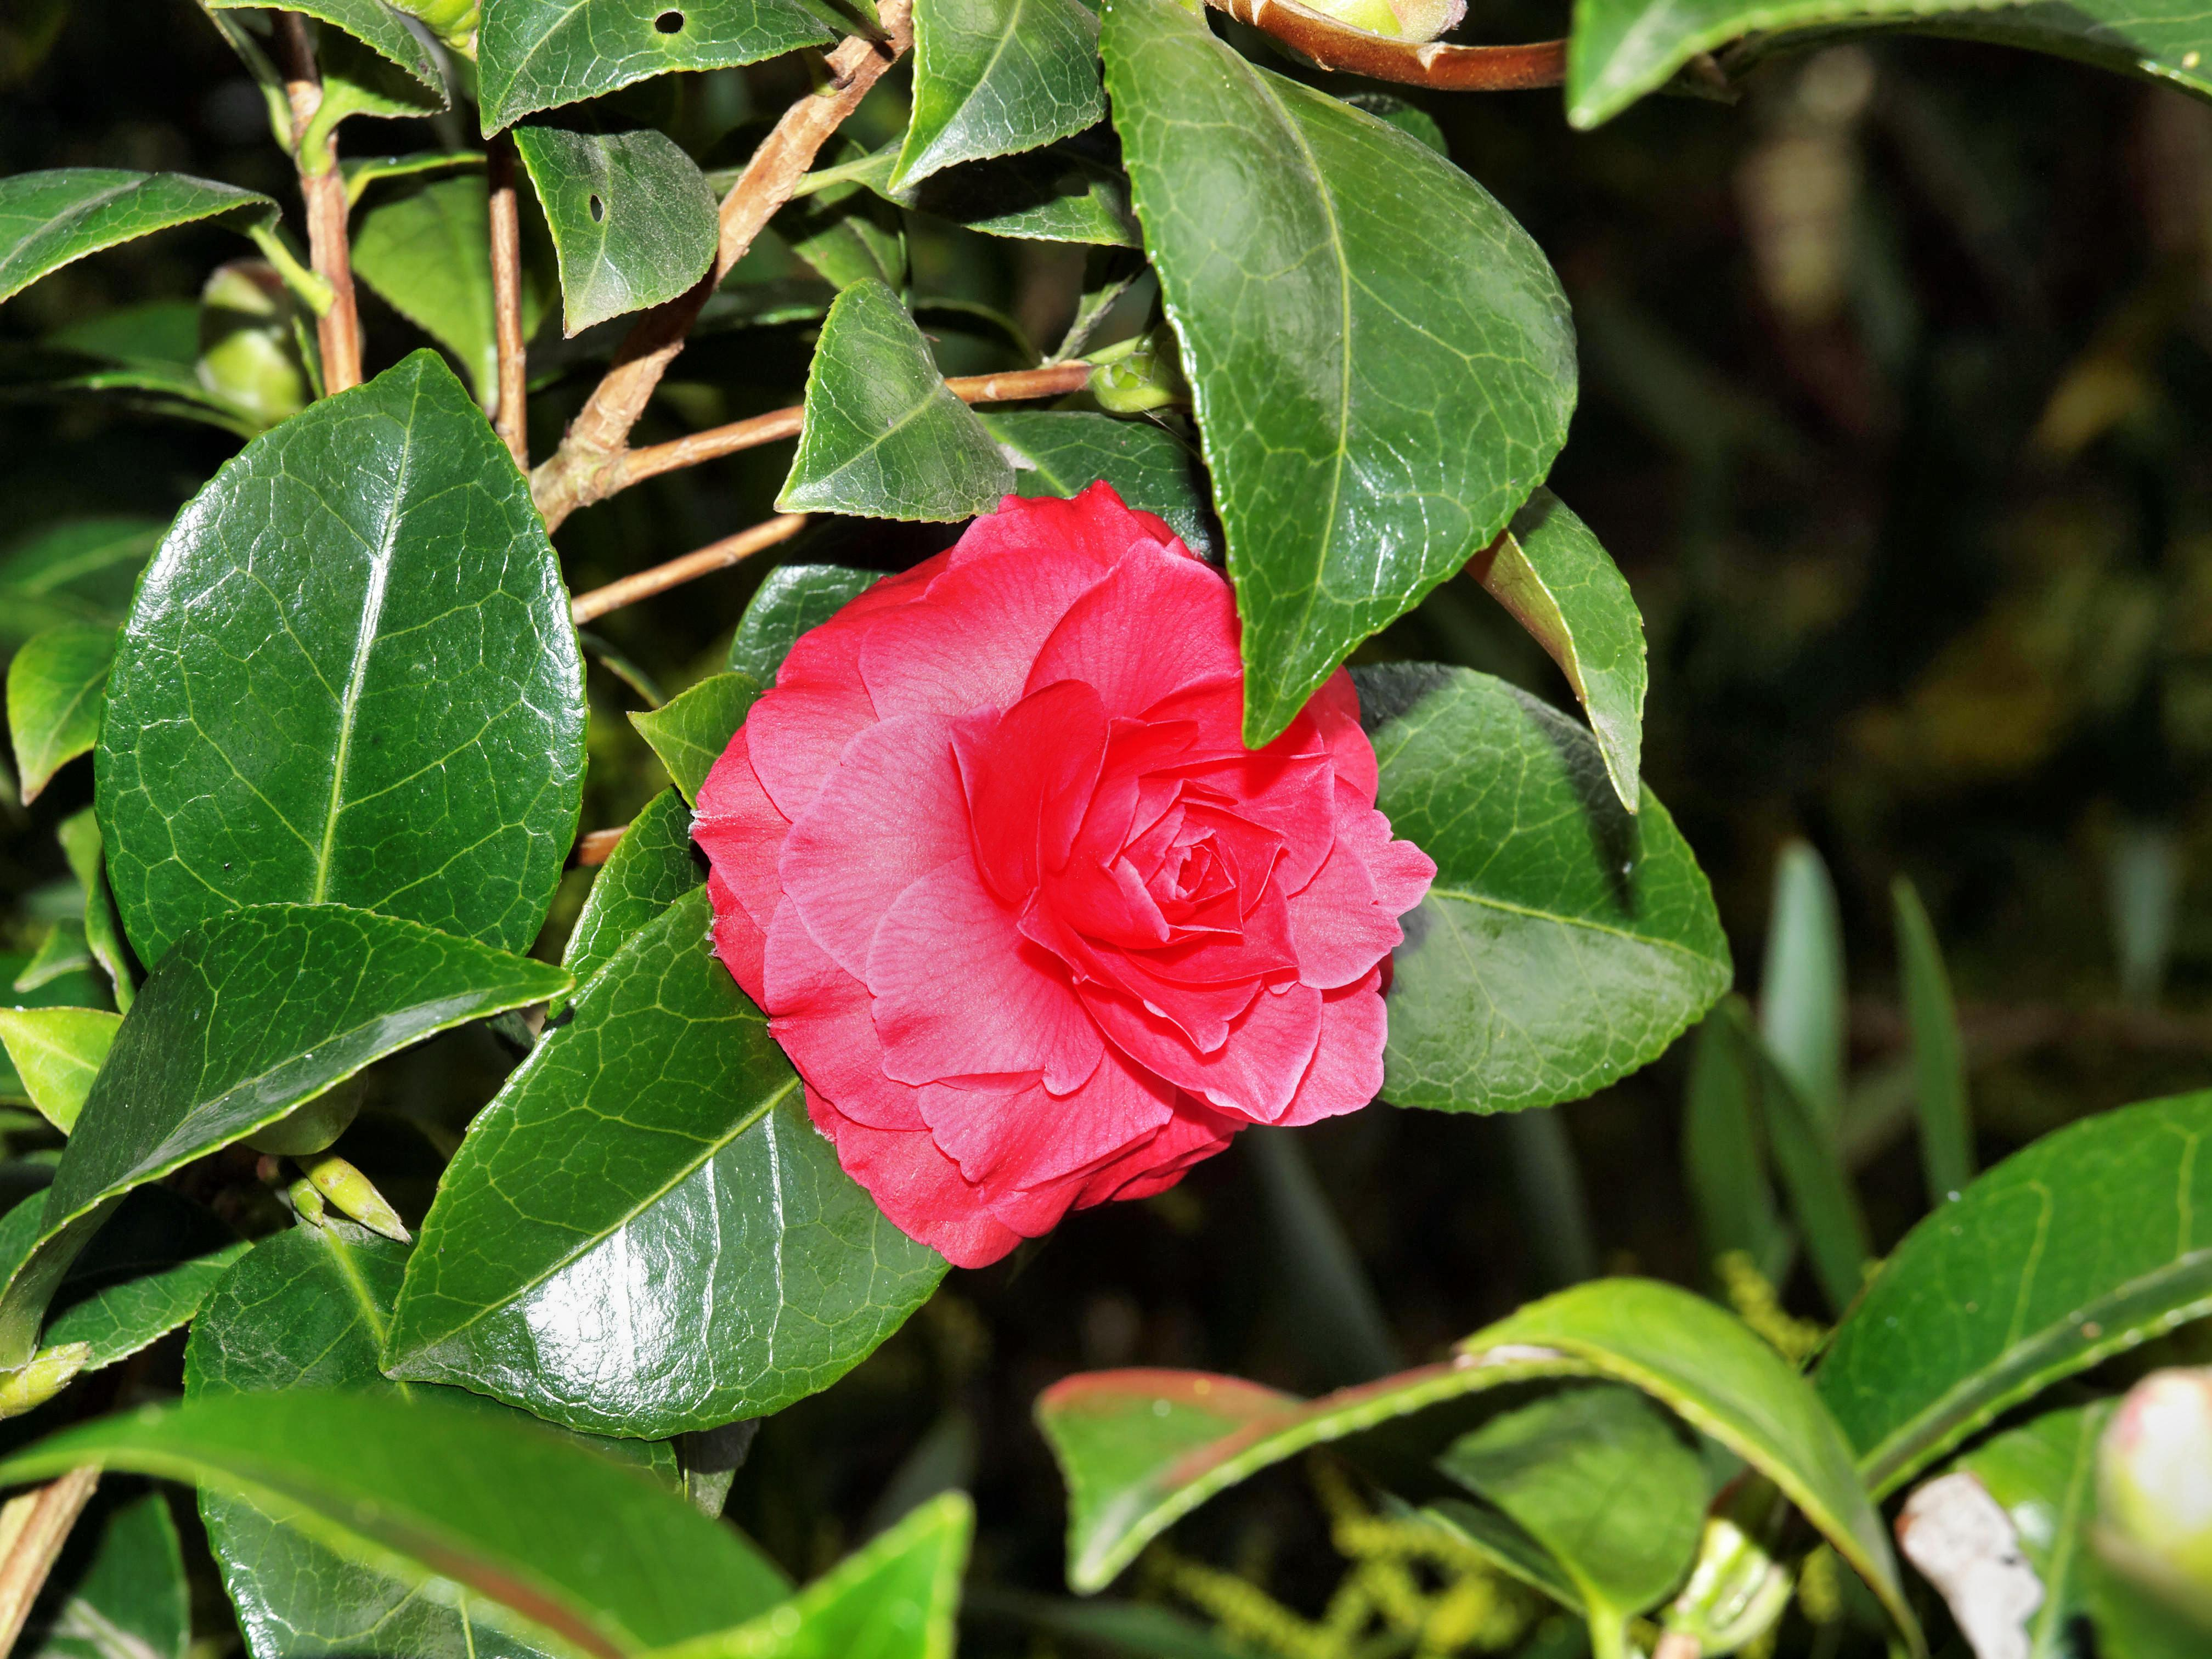 This should be Camellia-1.jpeg.  Is it missing?